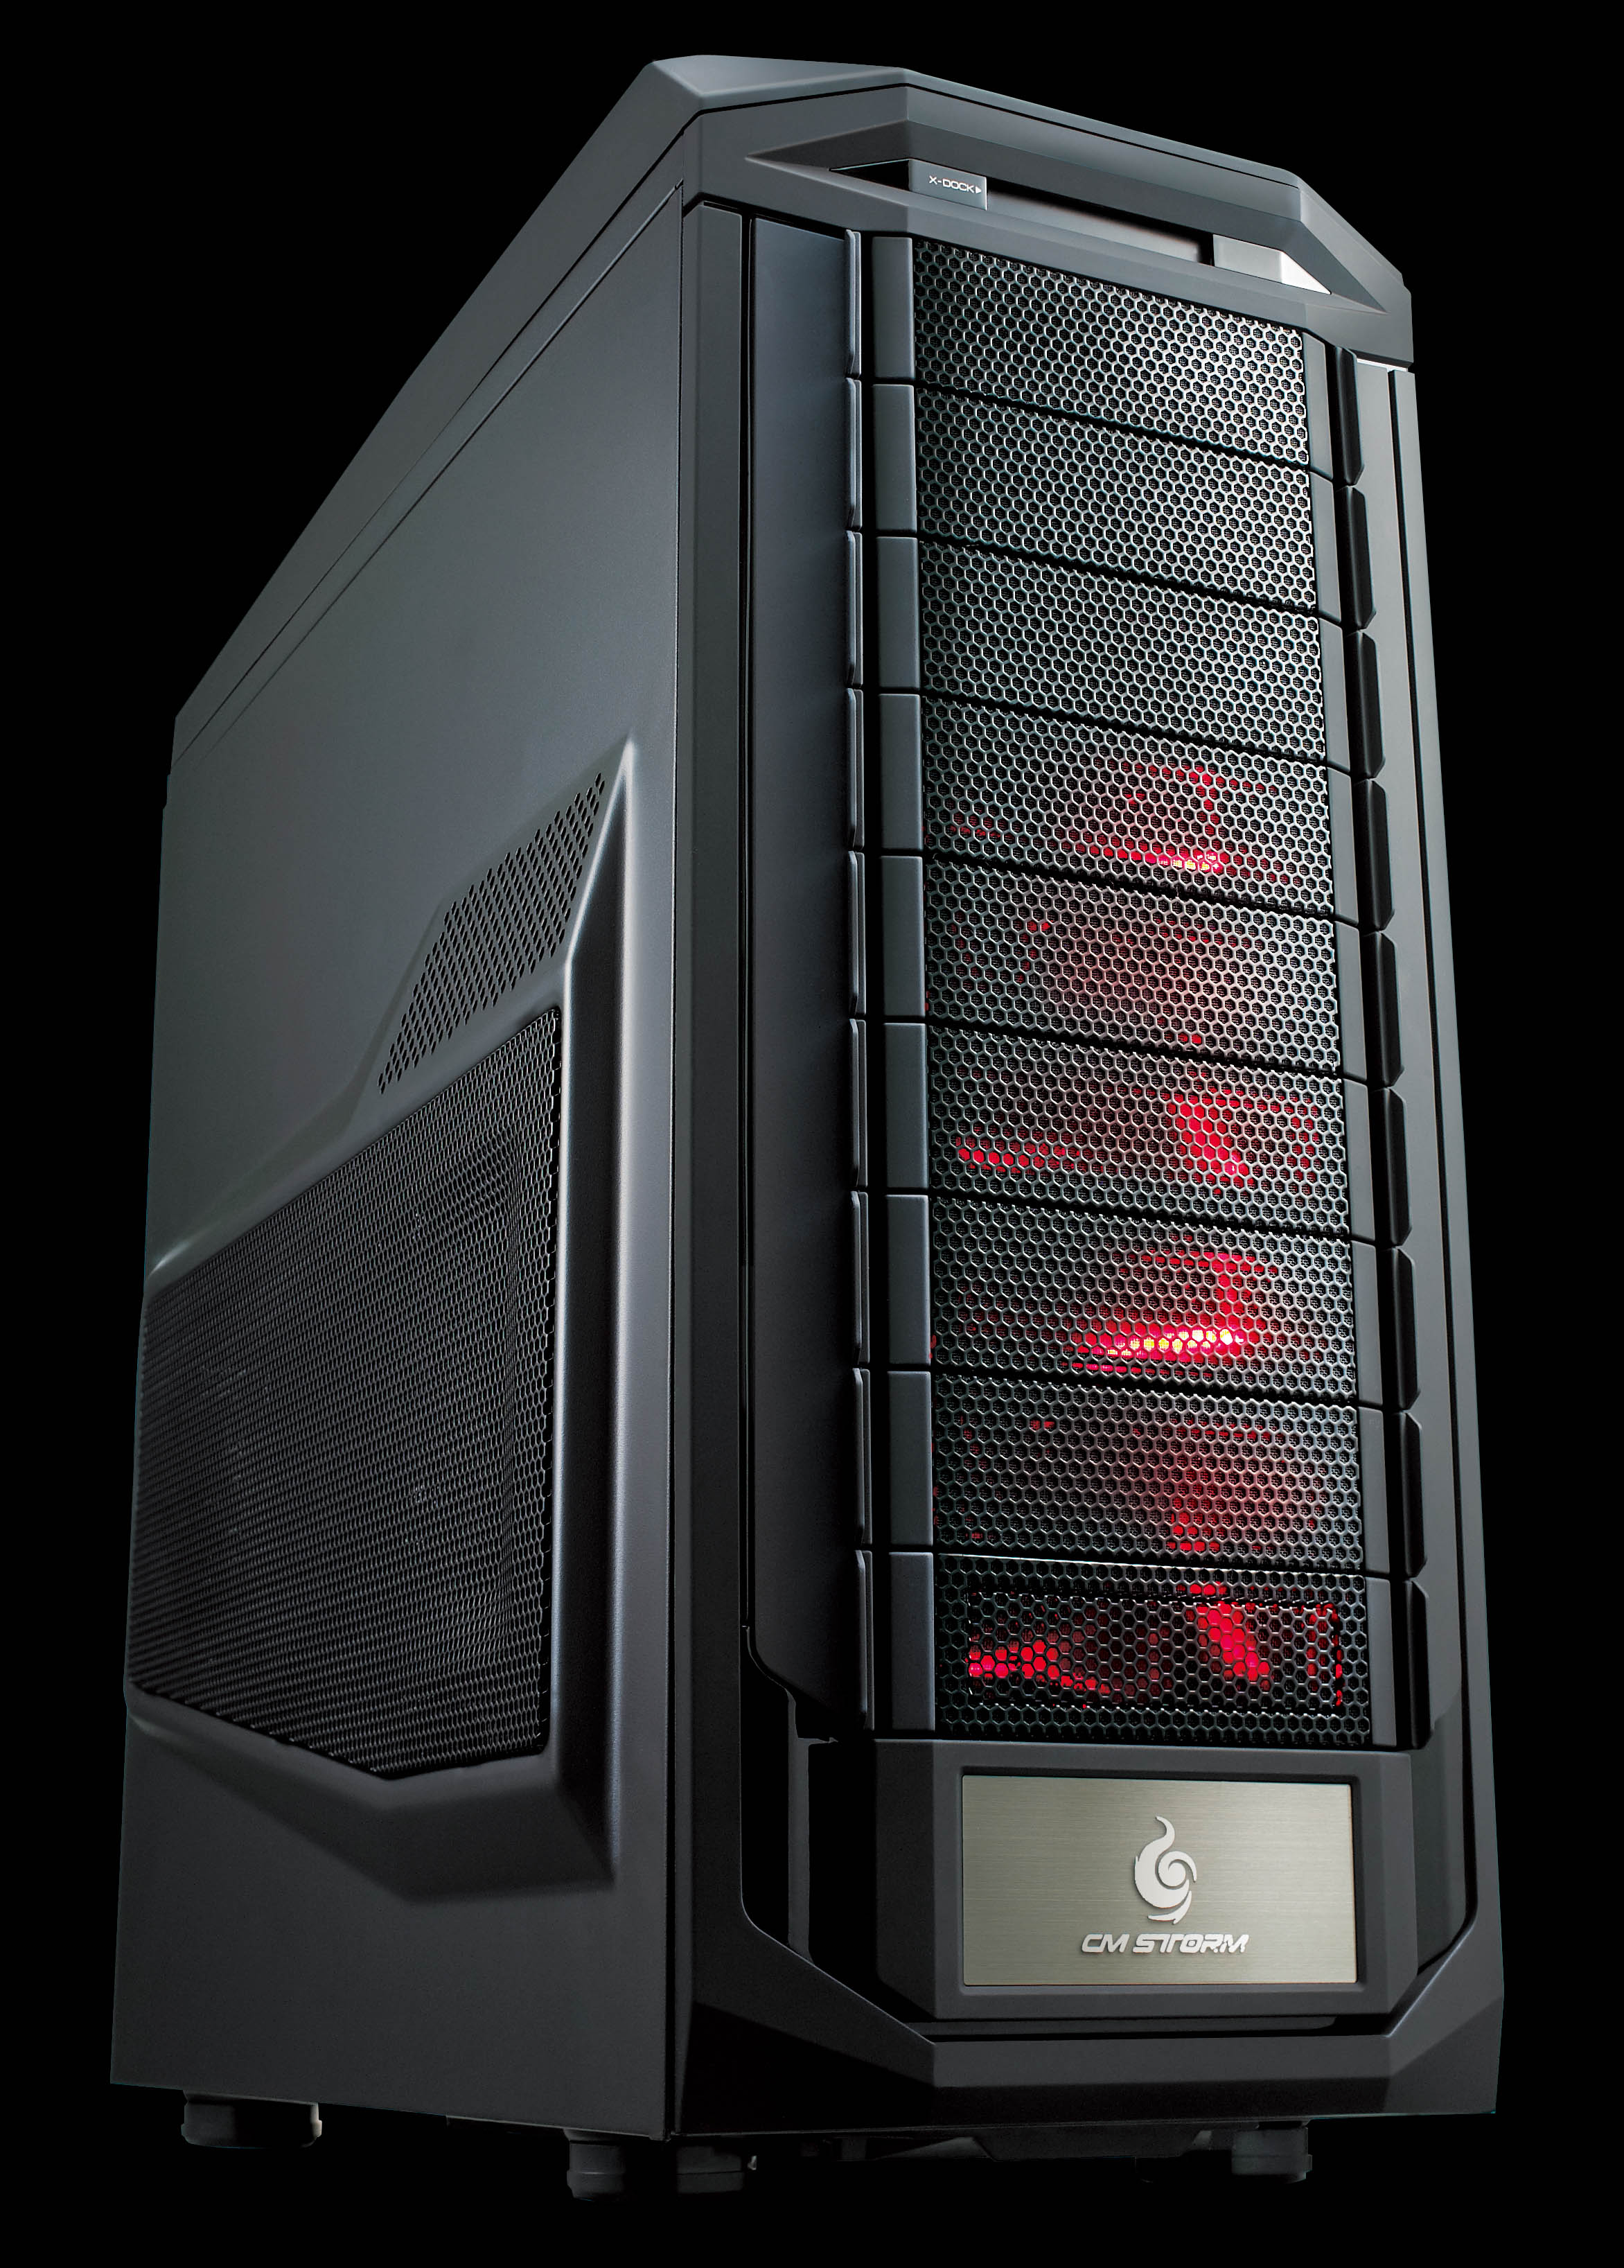 Coolermaster Cm Storm Trooper Full Tower Gaming Case